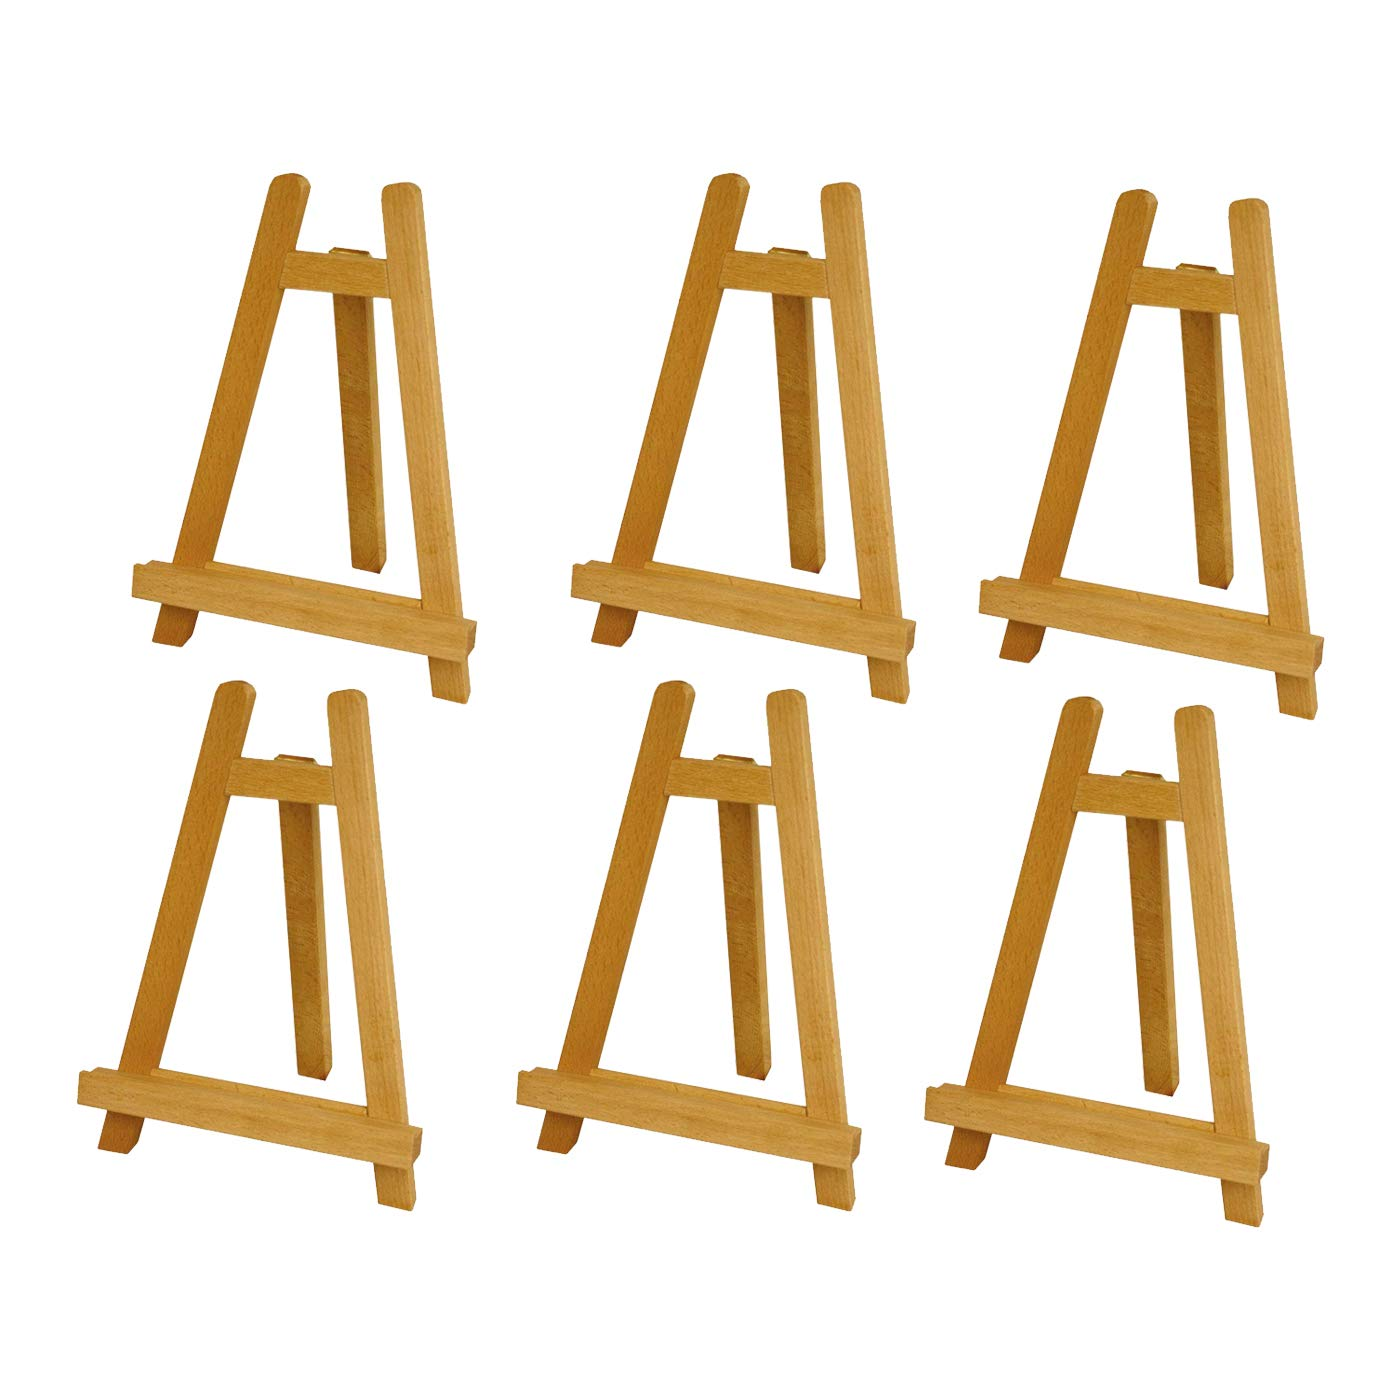 Office & School Supplies 2019 Latest Design Up-down Back Brace Table Top Display Wood Artist Art Easel Craft Wooden For Introductory Students For Party Decoration